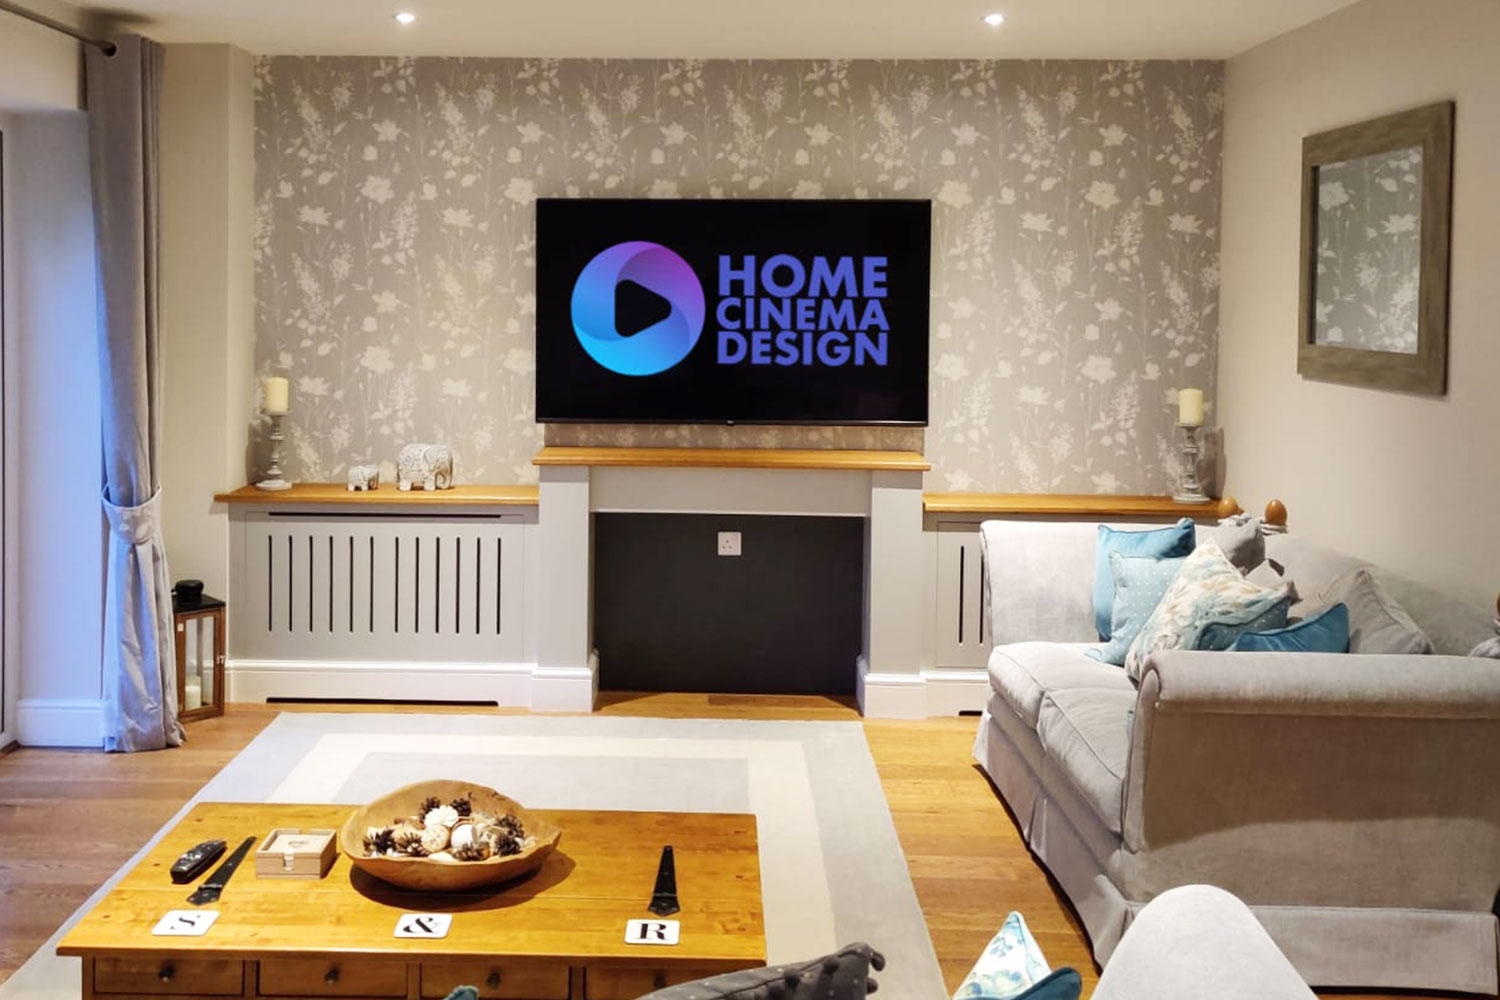 Home Cinema Design - TV Mounting - Specialists in Audio Visual & Smart Home Installations